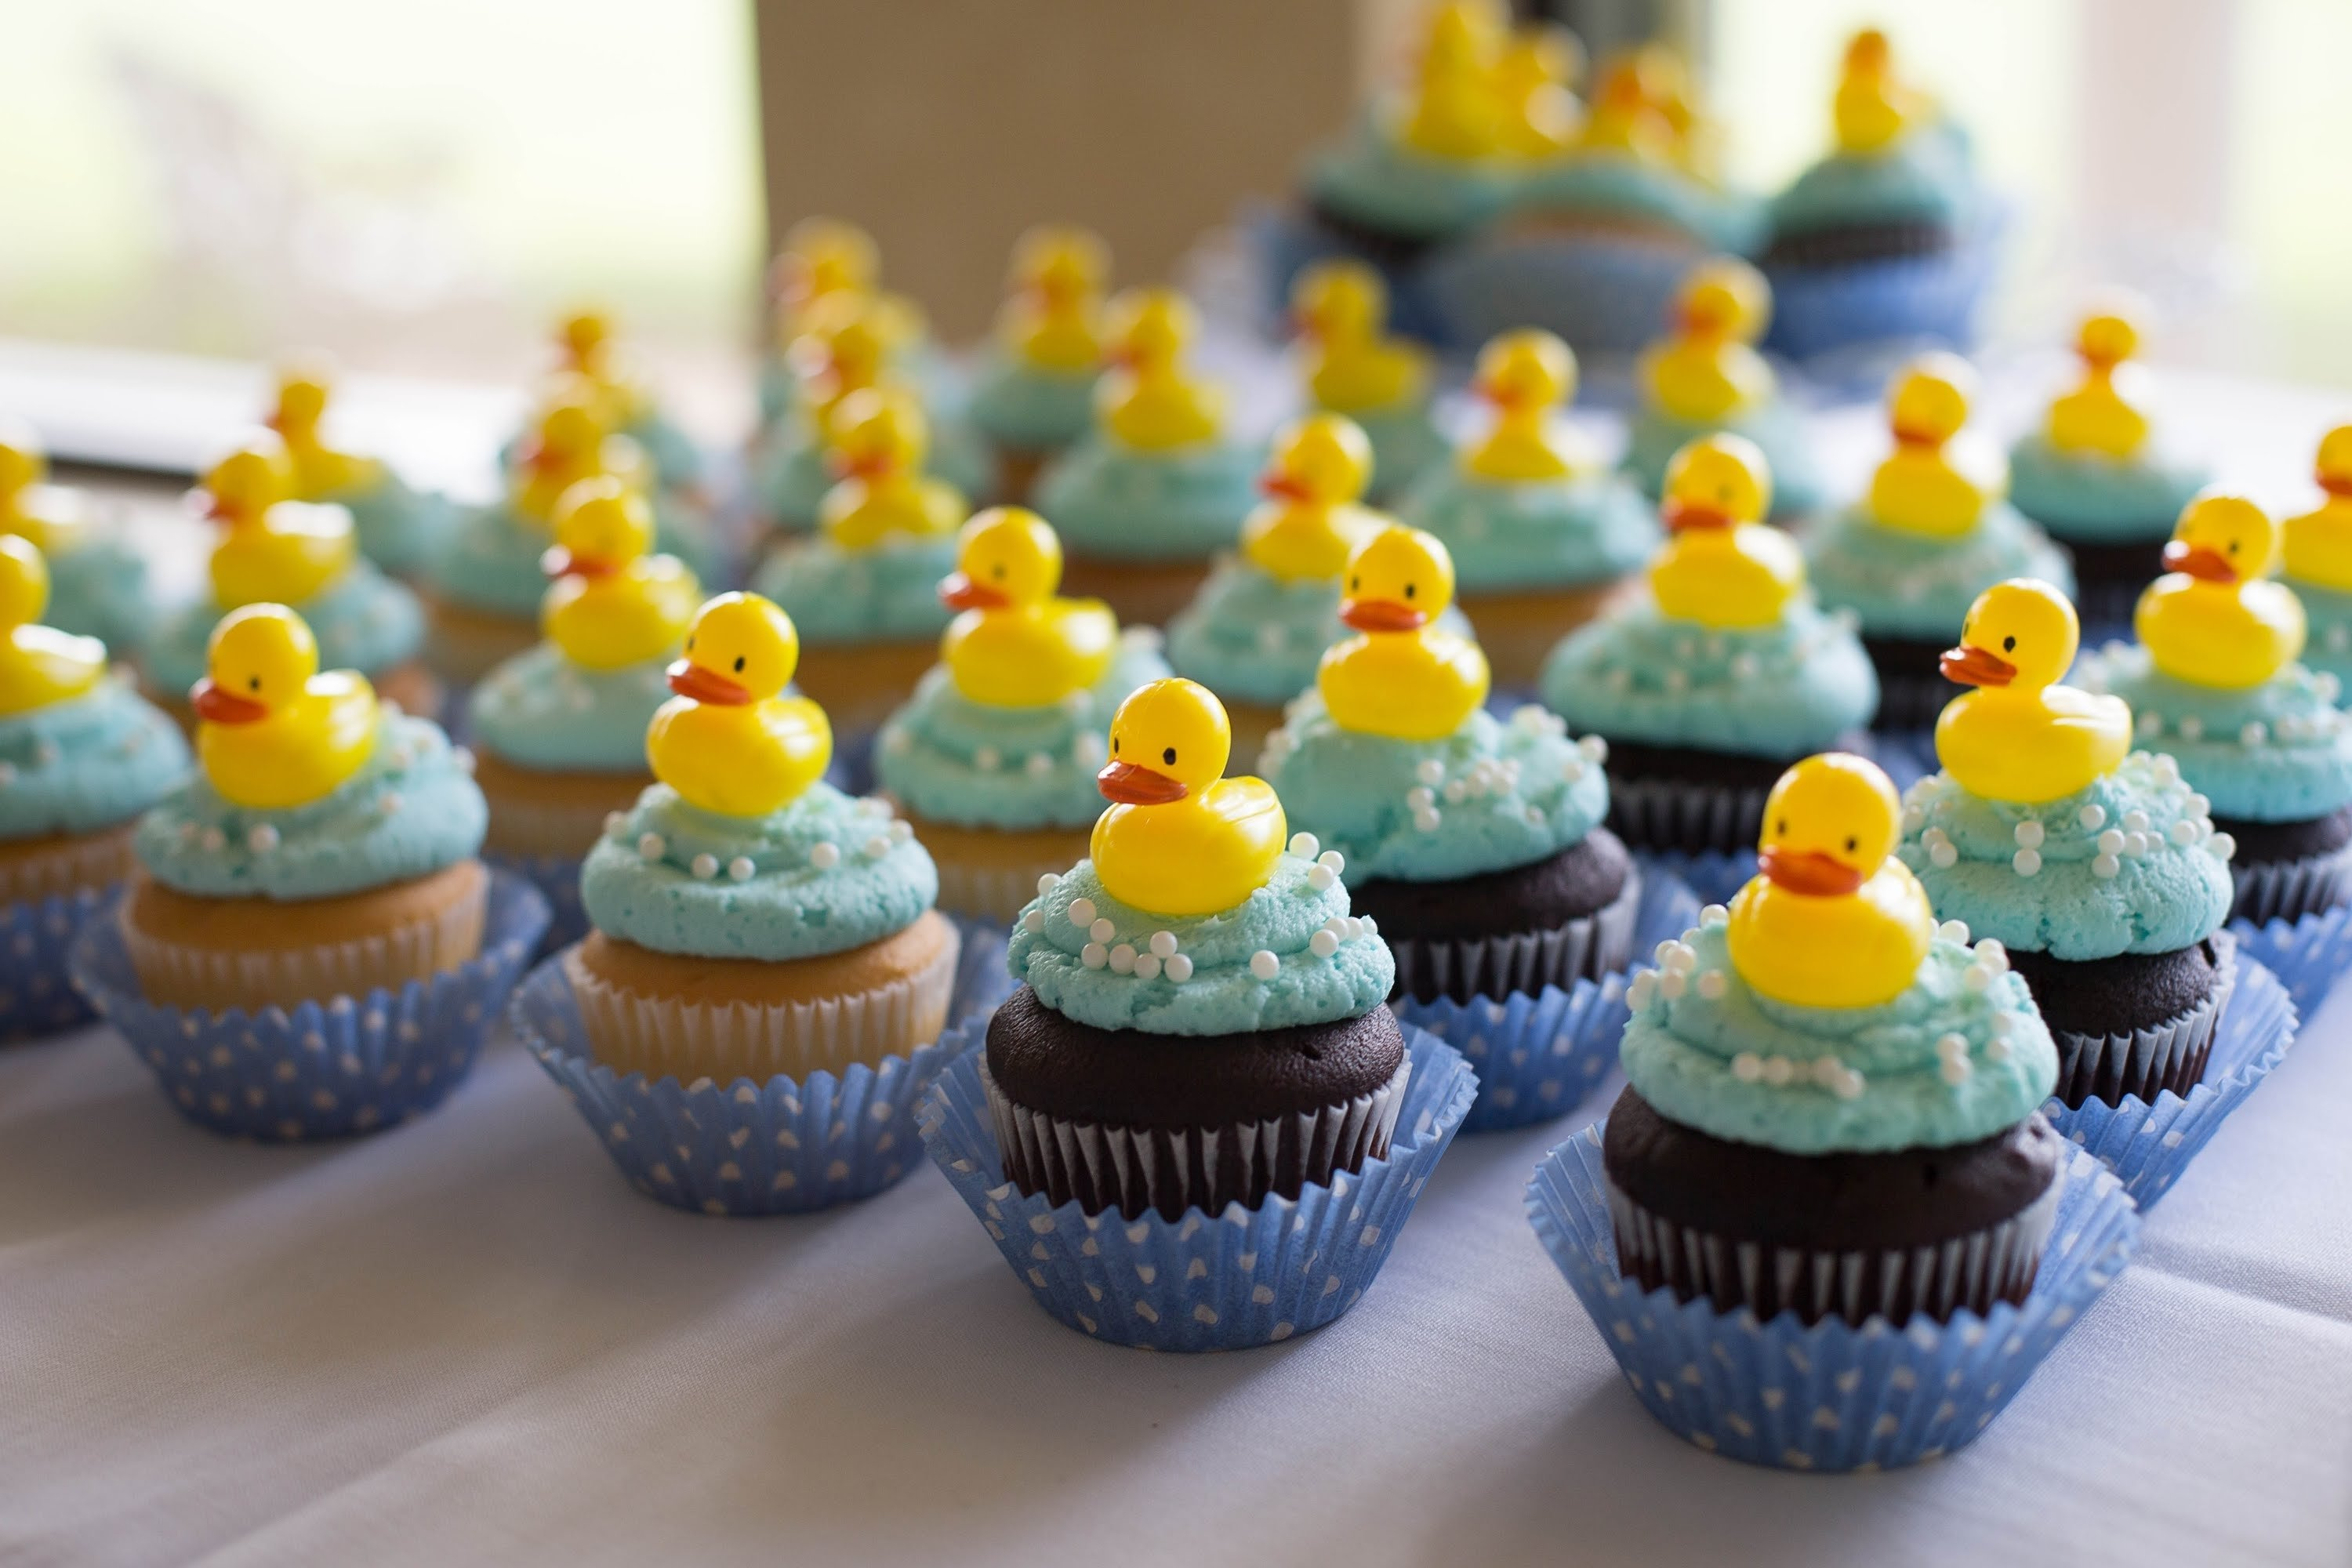 10 Amazing Rubber Duck Baby Shower Ideas creative rubber duckie baby shower ideas youtube 2021